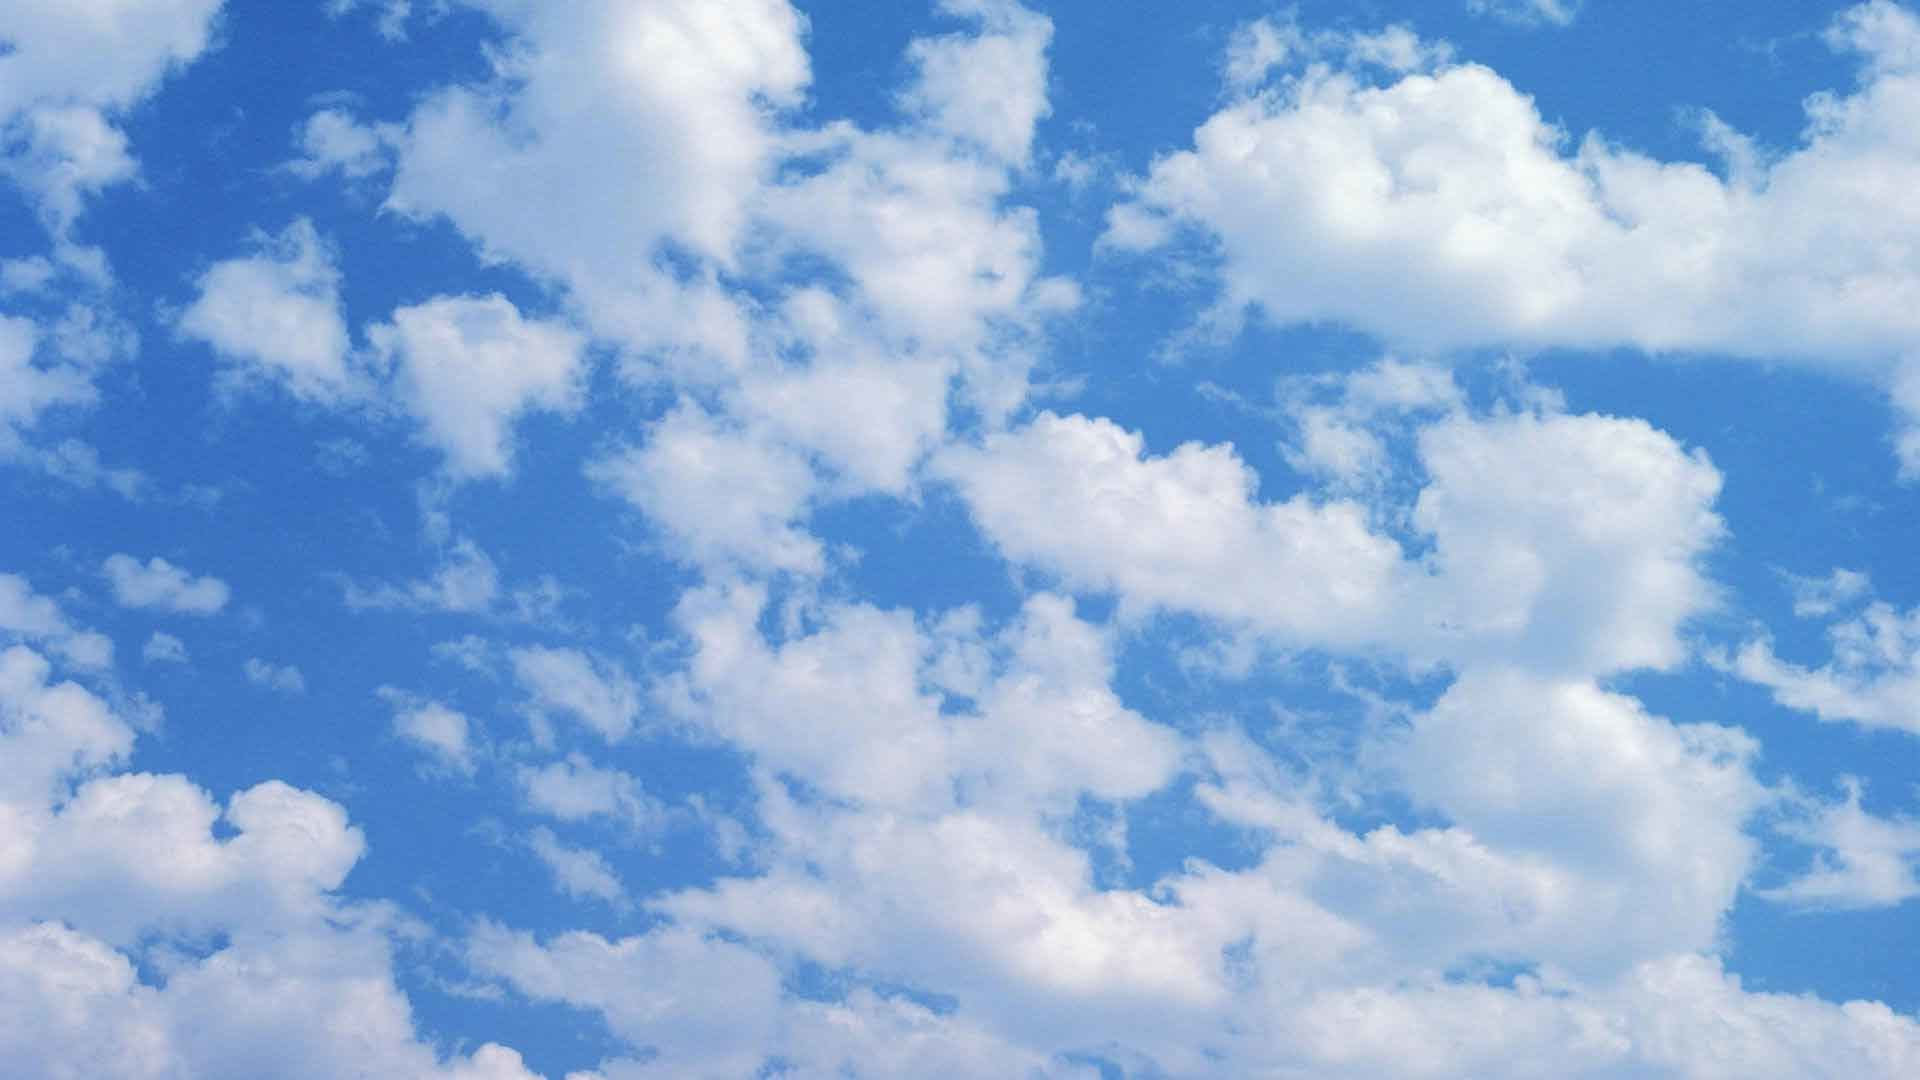 windows 98 wallpaper clouds wwwpixsharkcom images